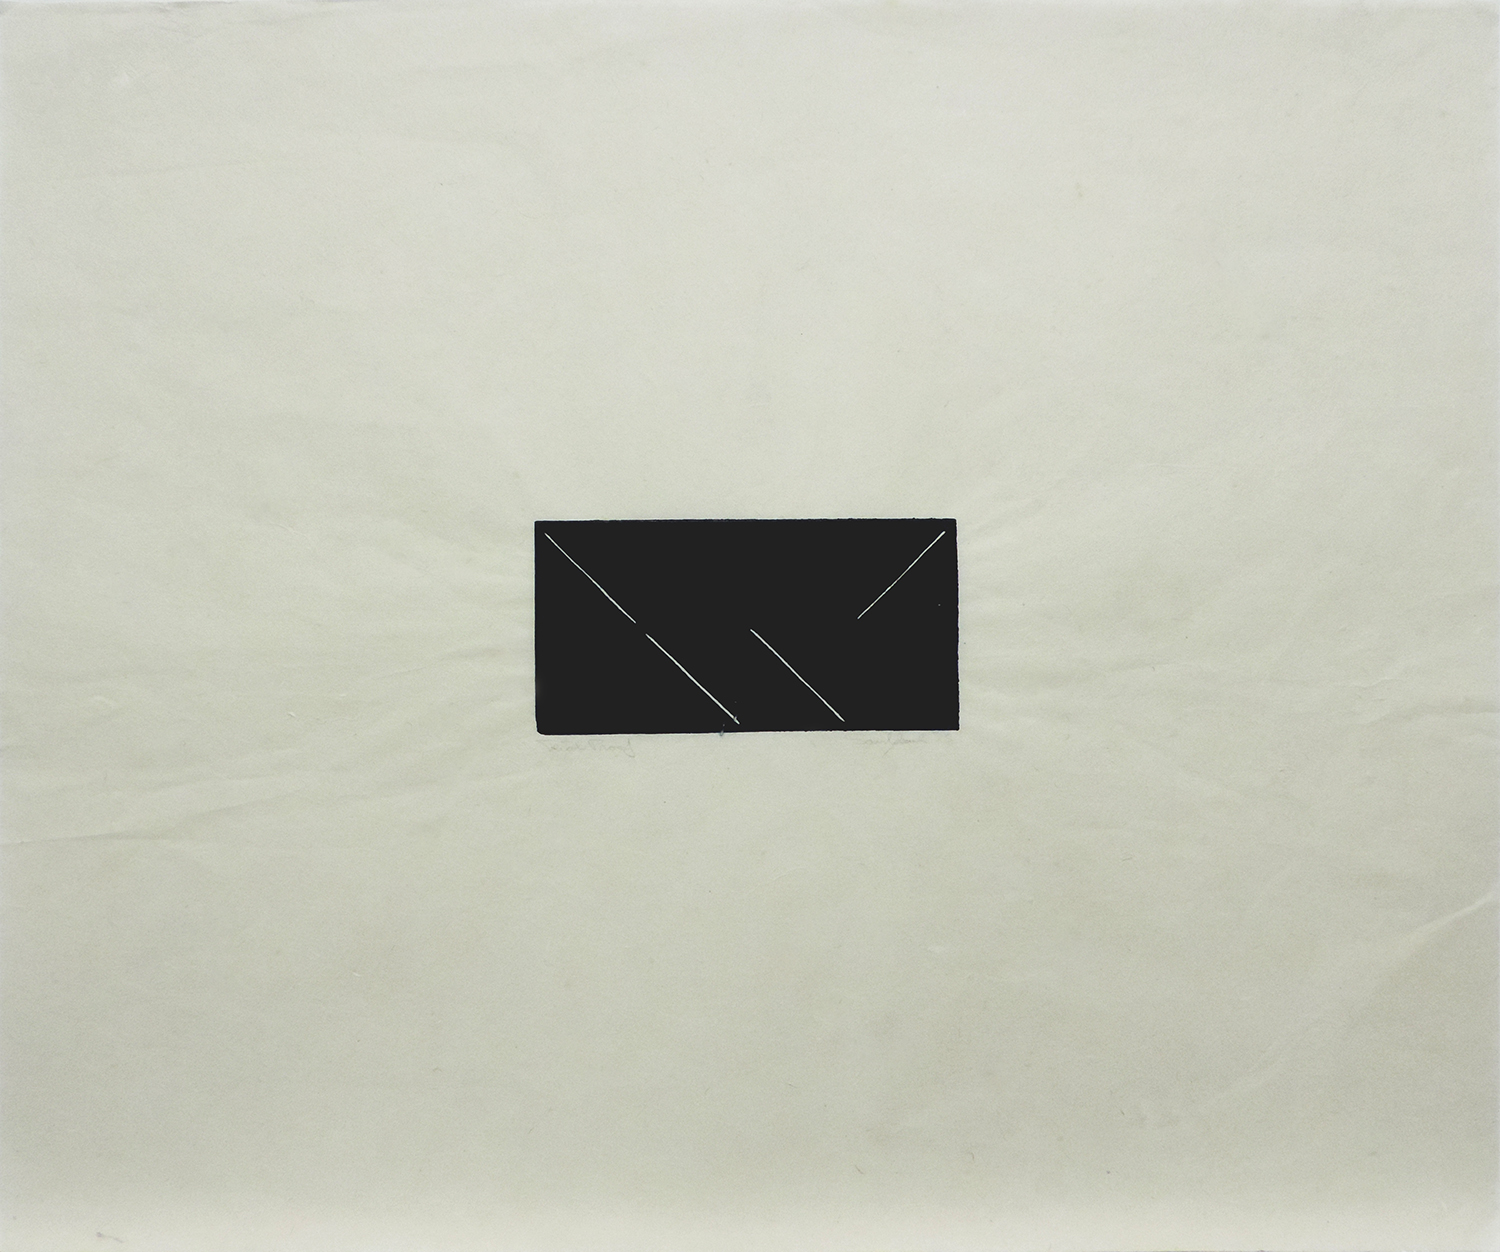 Untitled|linoleum cut on Japanese paper|44.5 x 53.4 cm|1975